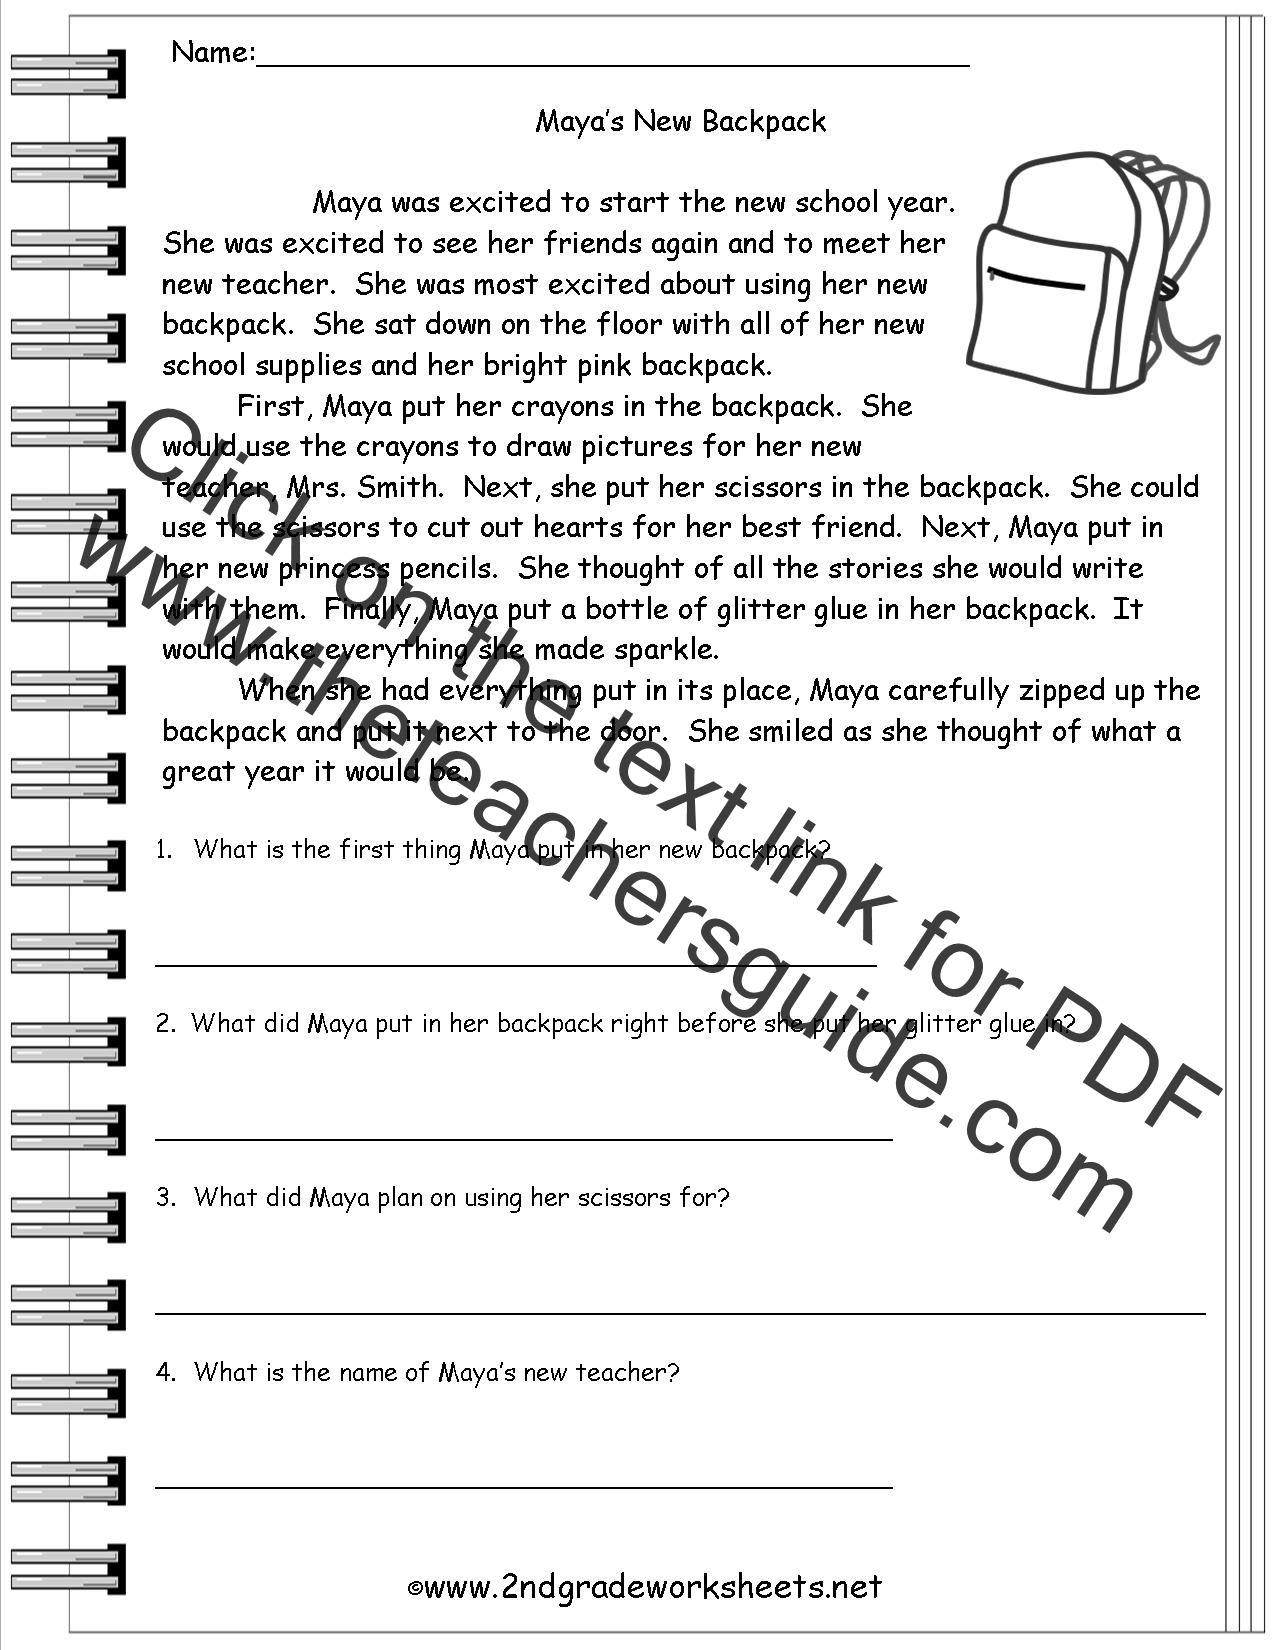 Worksheets 10th Grade Reading Comprehension Worksheets reading worksheets free library download and print worksheeets